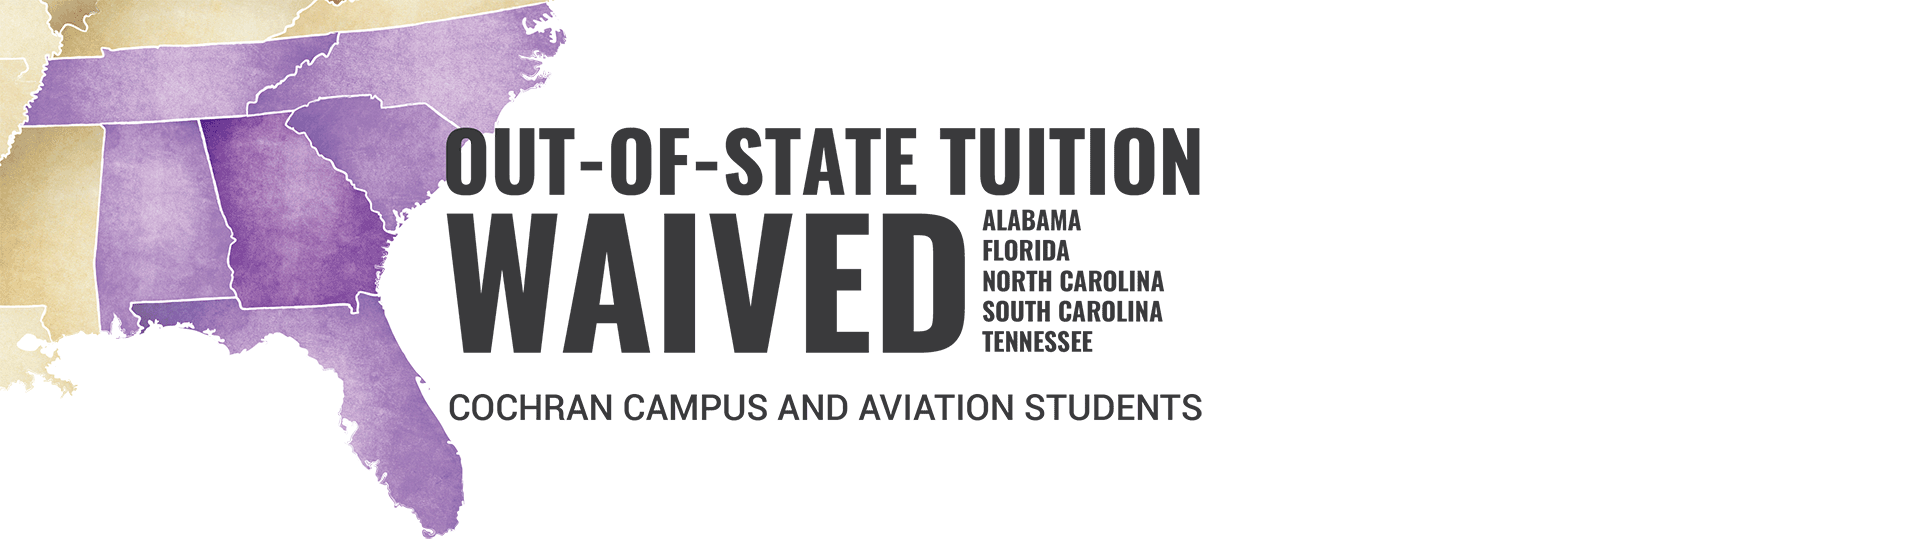 Out of State Tuition Waived for Alabama, Florida, South Carolina, Tennessee. Cochran Campus and Aviation Students.